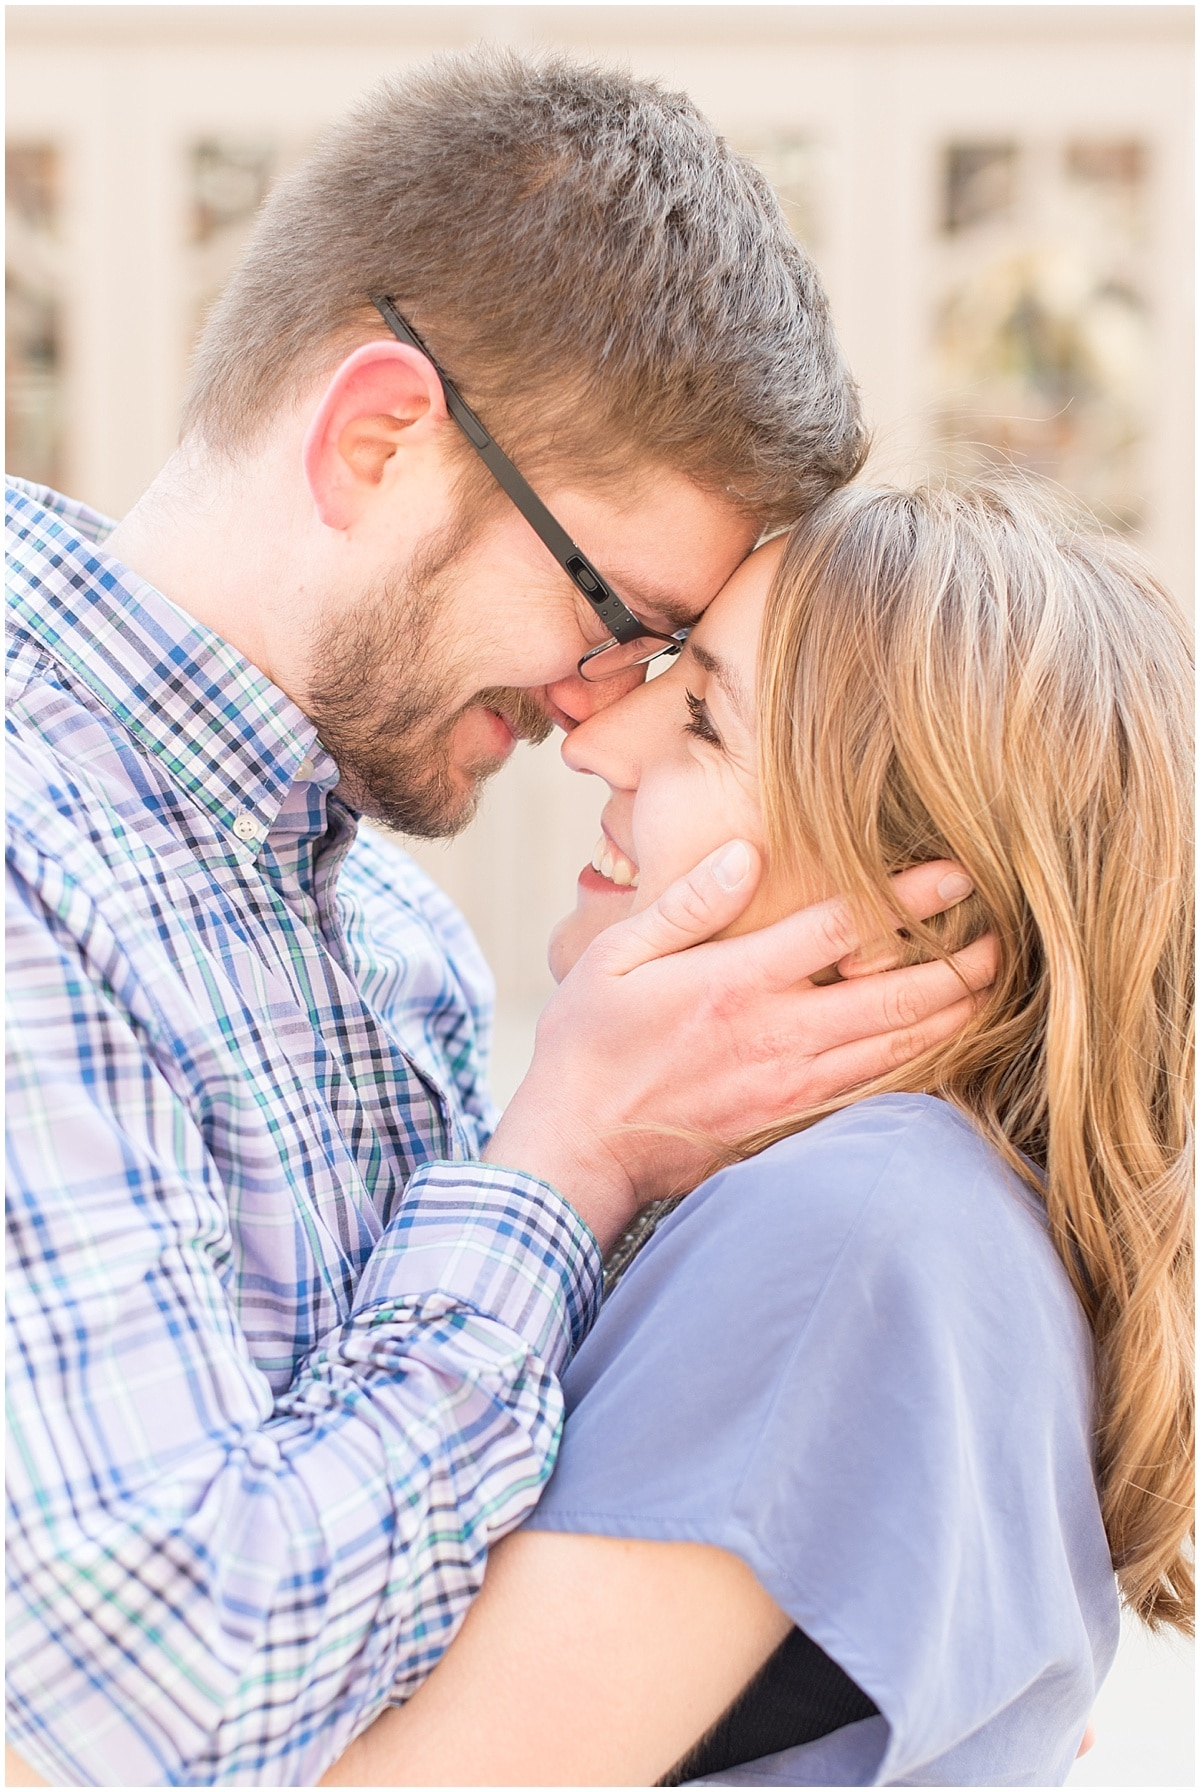 Stephen and Jessica had took their engagement photos in West Lafayette, Indiana.